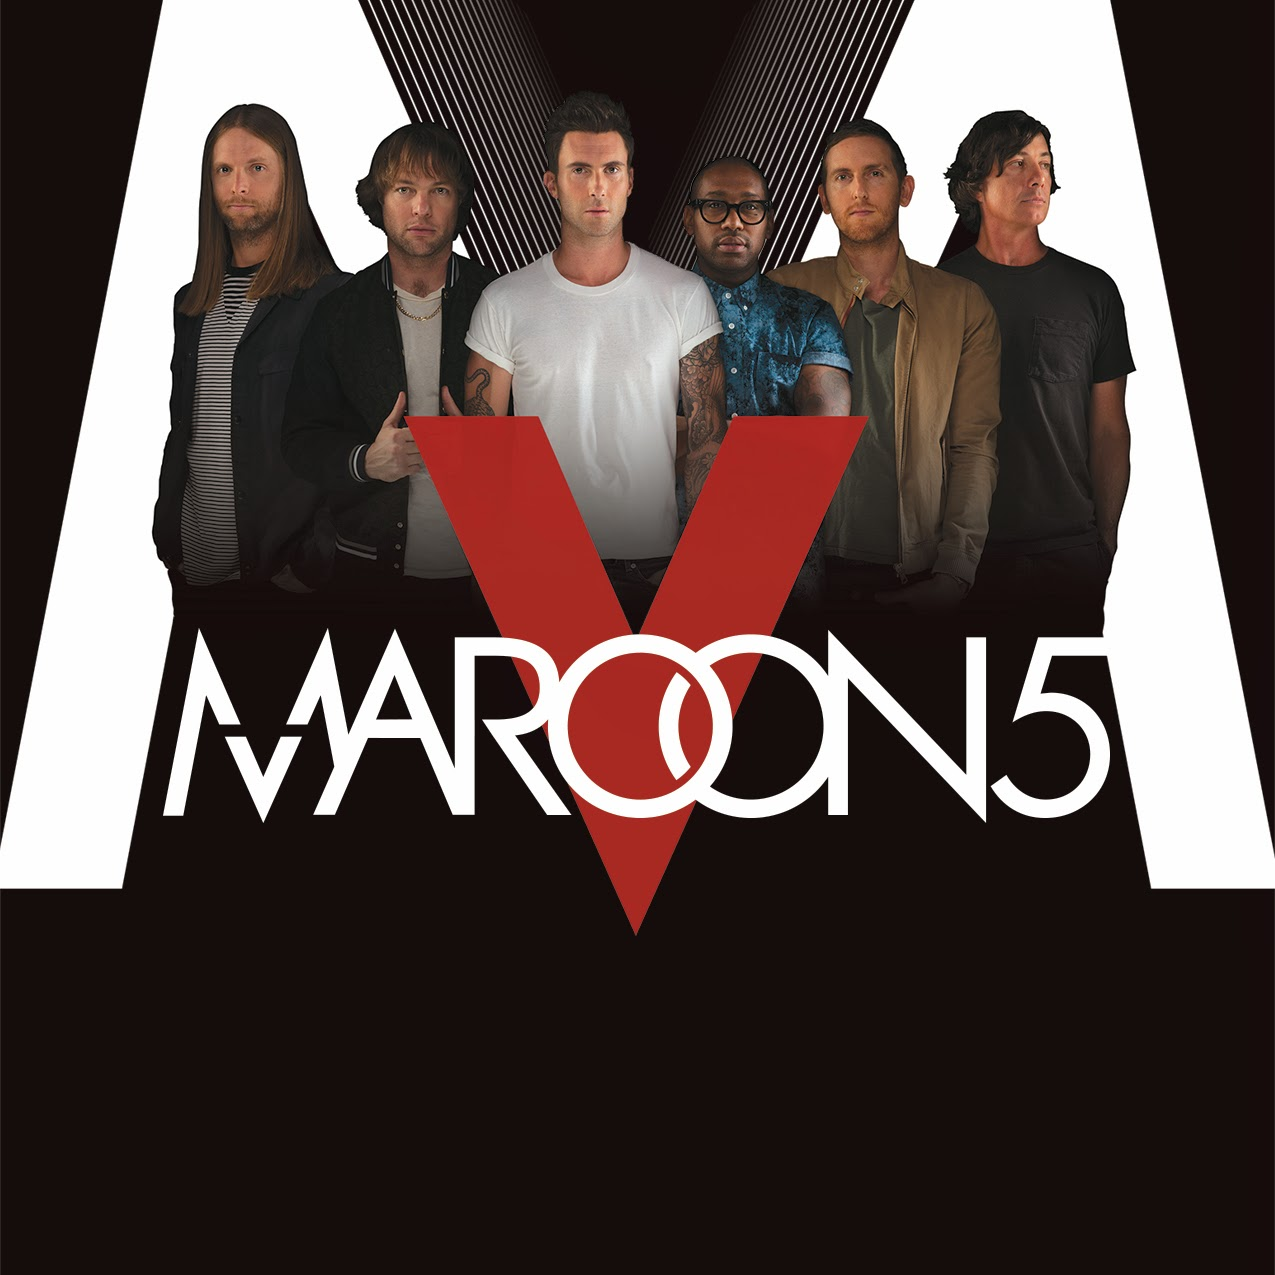 Maroon  V Tour Tickets Philippines